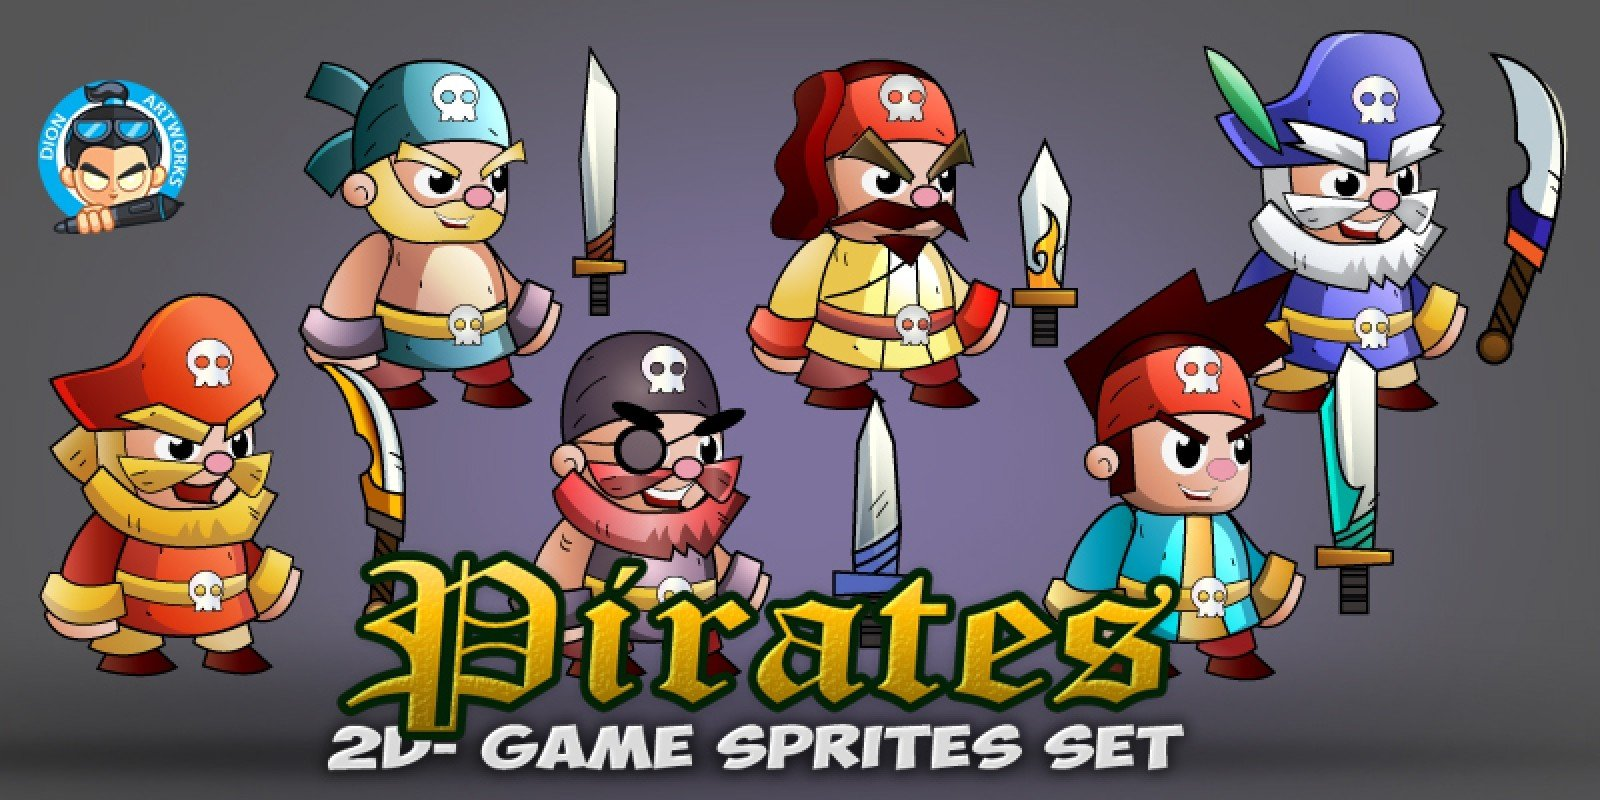 6- Pirates 2D Game Character Sprites Set